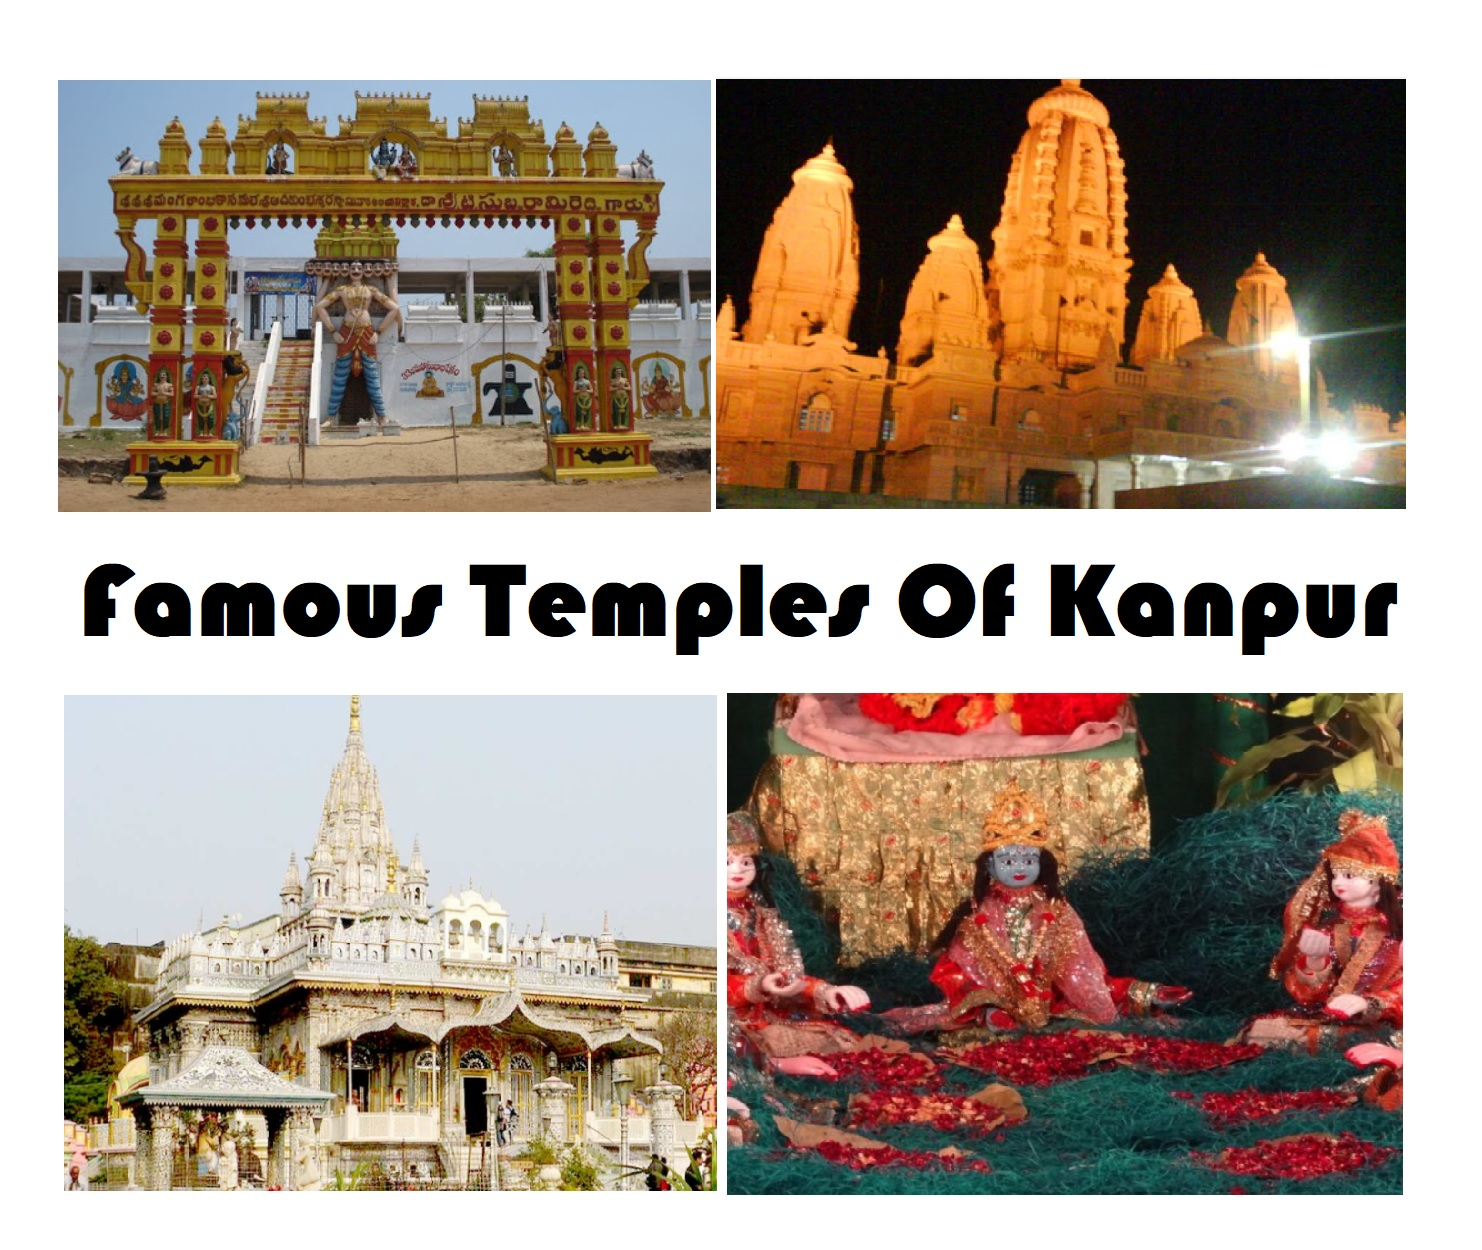 famous temples of Kanpur